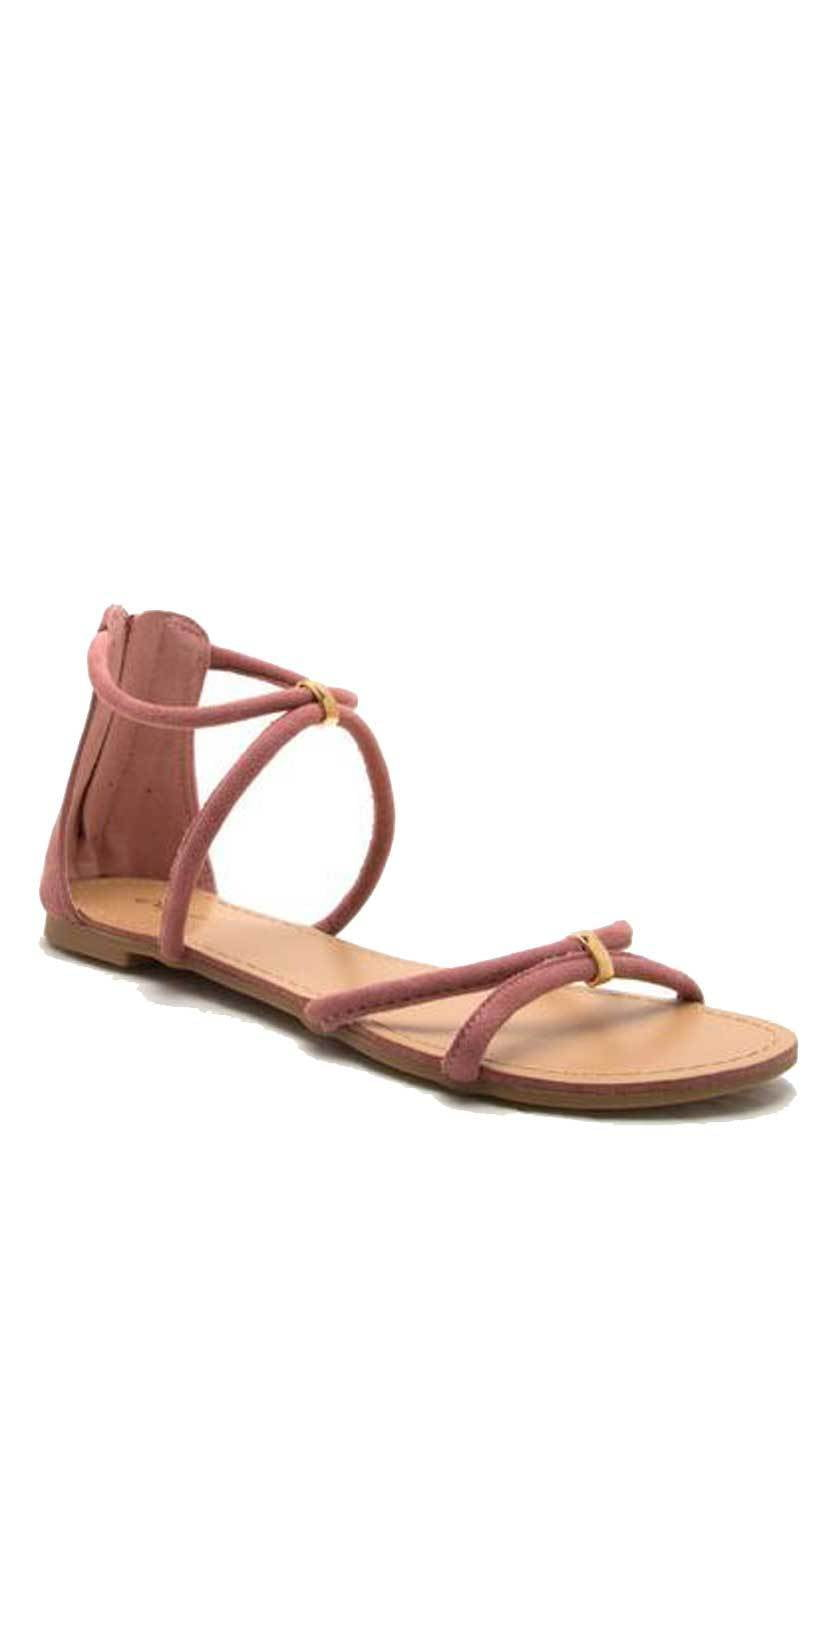 Qupid Shoes Archer Banded Sandal ARCHER-391 MAUVE: